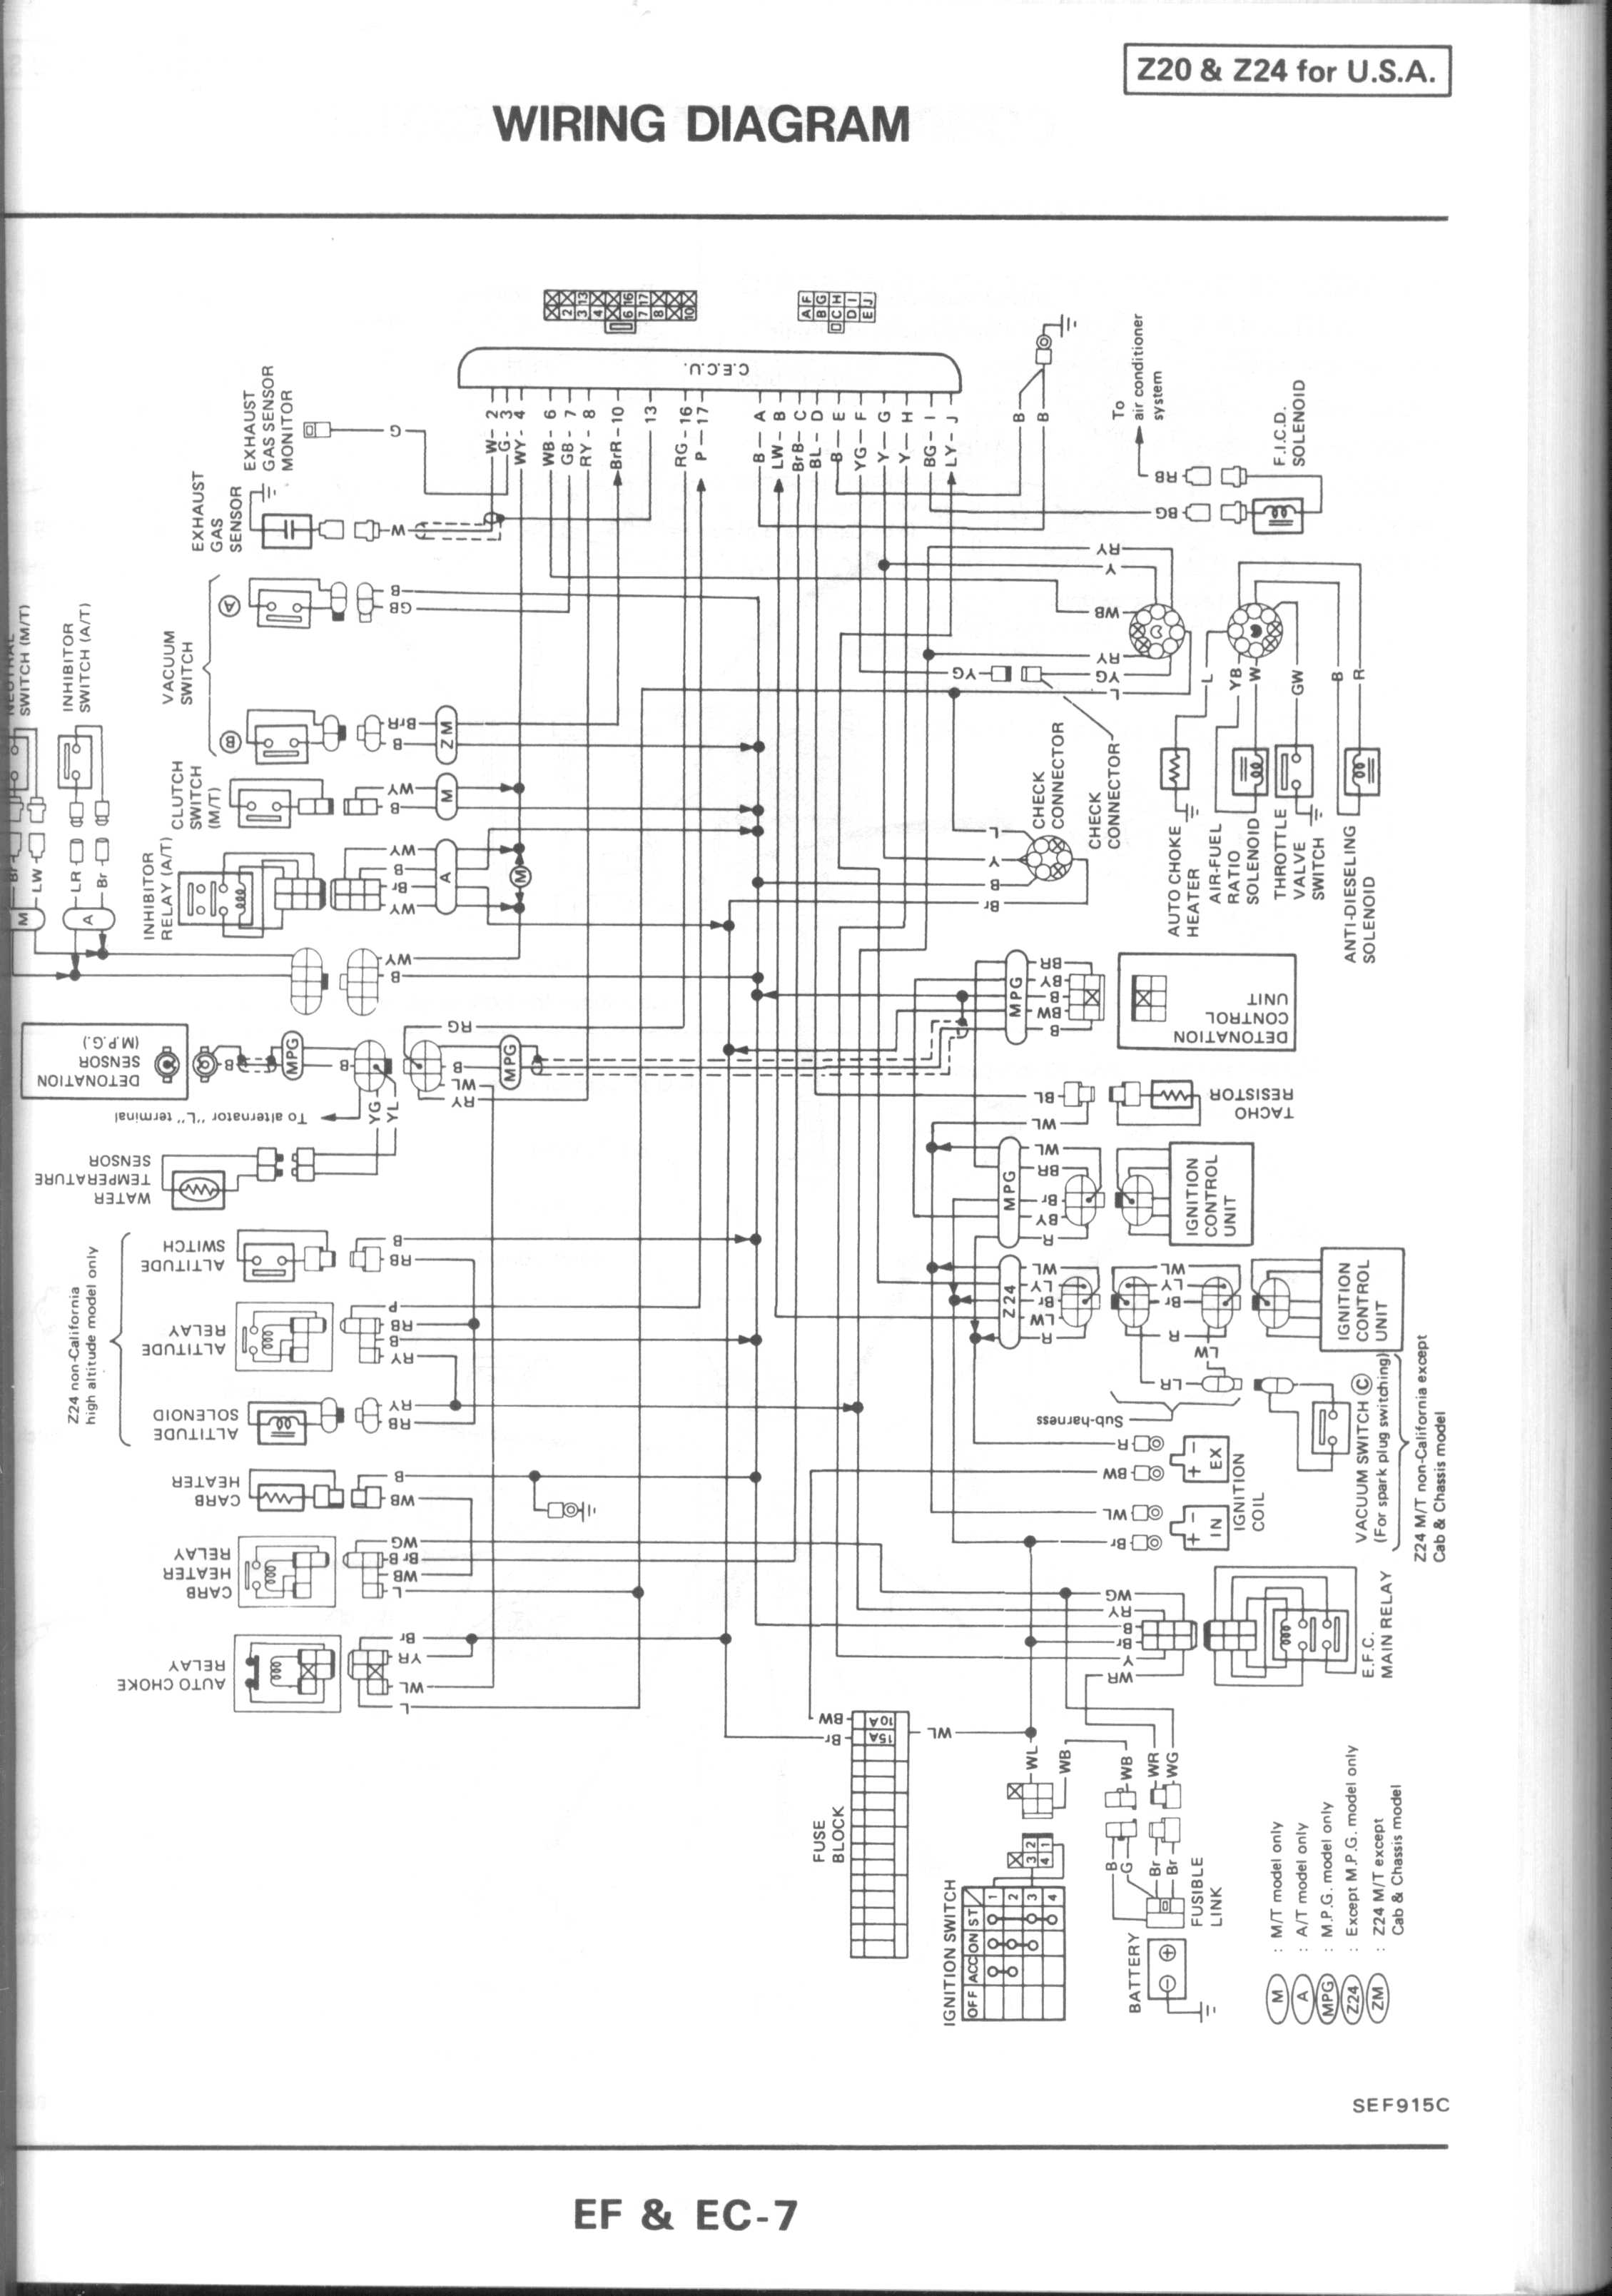 Wiring Diagram 1993 Nissan Pickup : Nissan hardbody d engine free image for